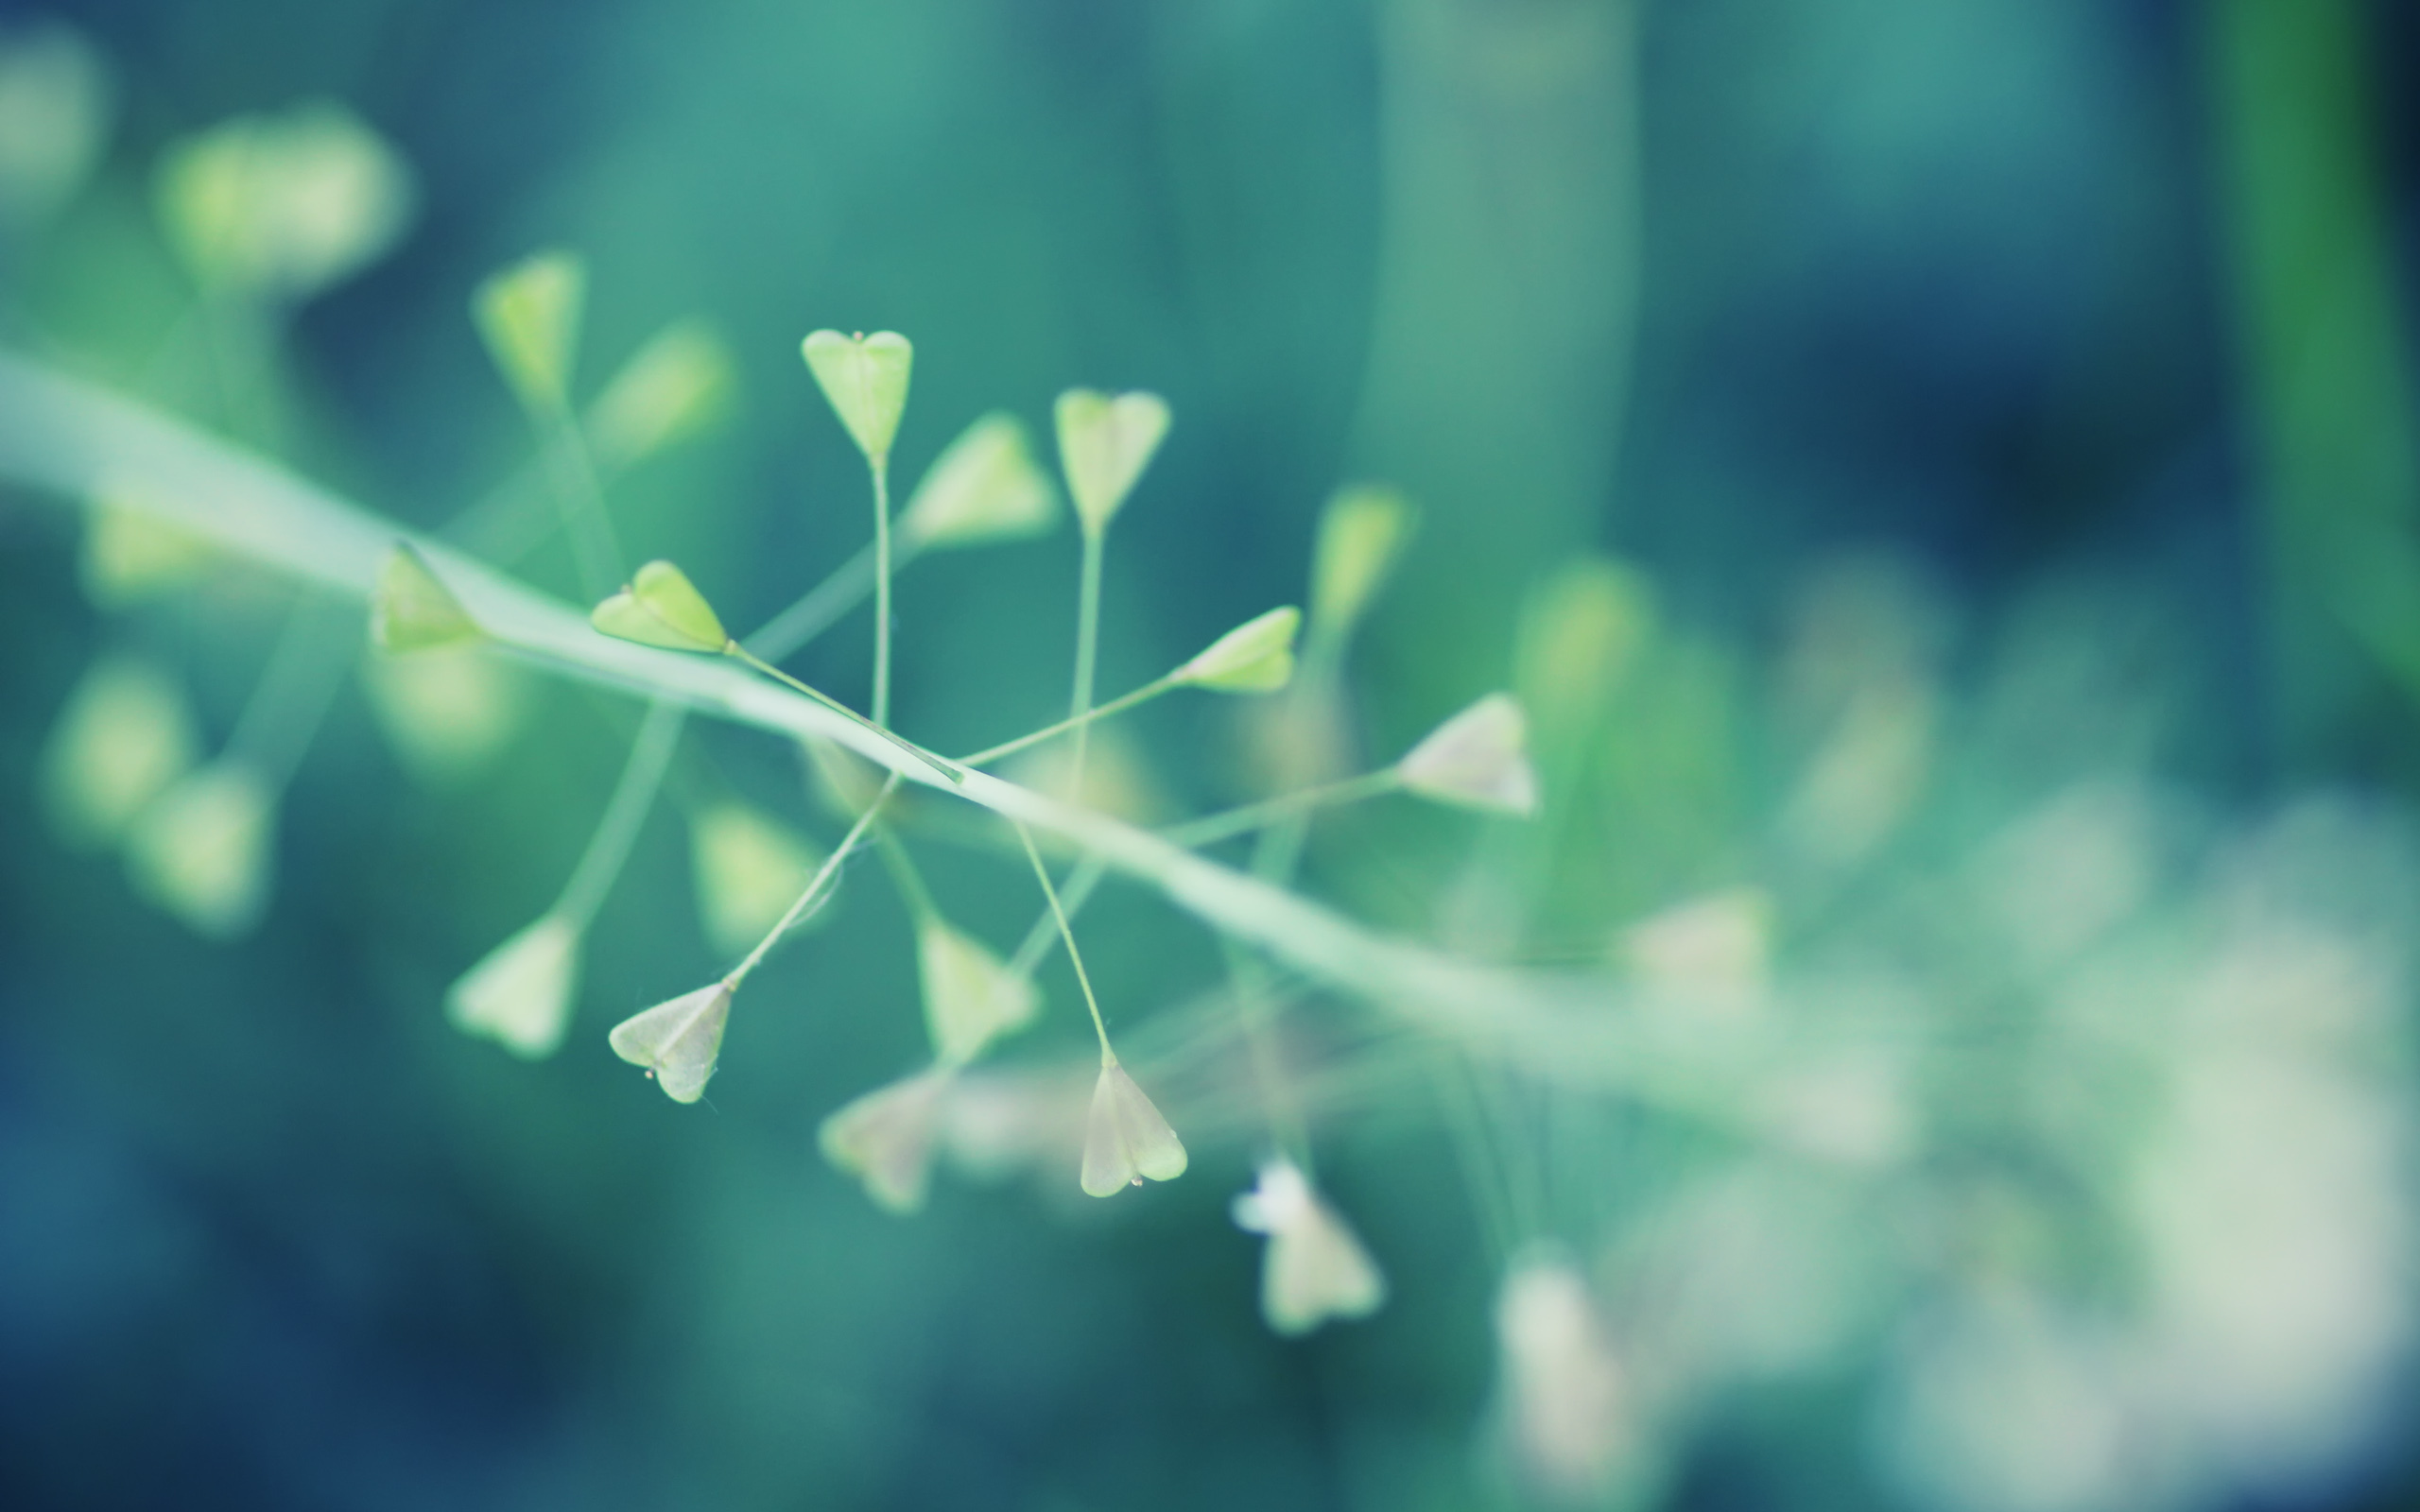 macro wallpaper download